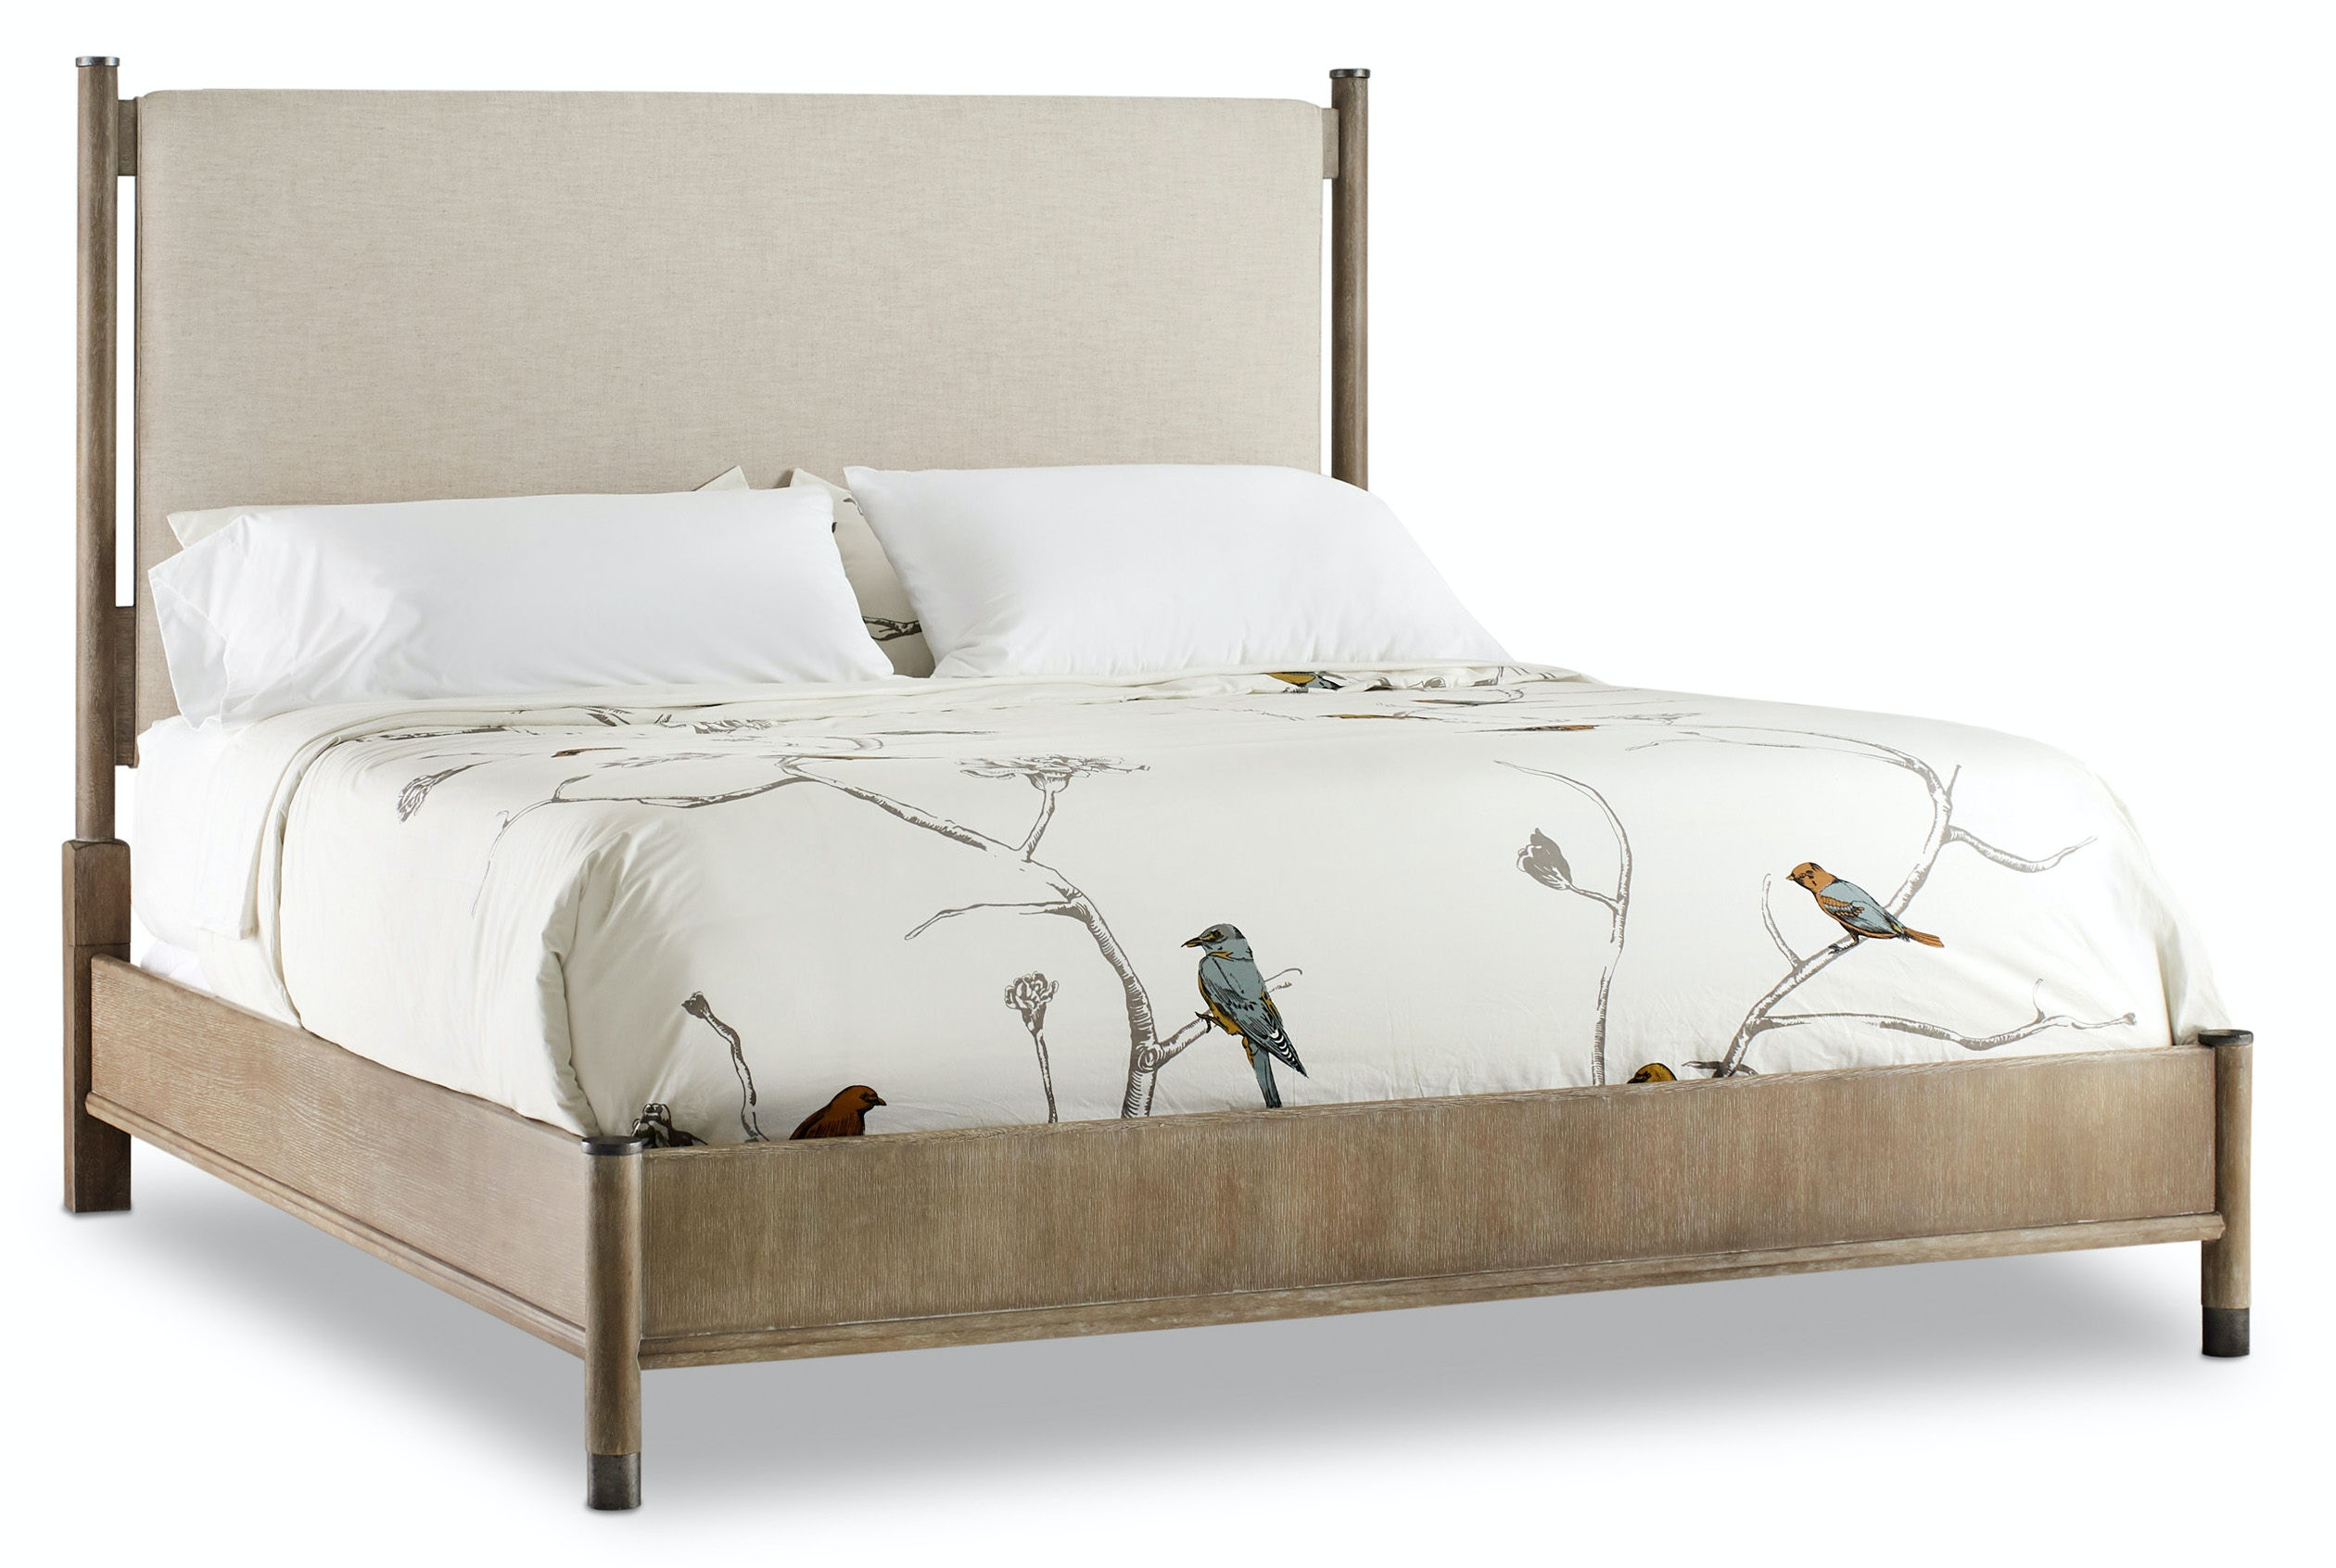 Hooker Furniture Bedroom Affinity California King Upholstered Bed 6050 90960 Gry